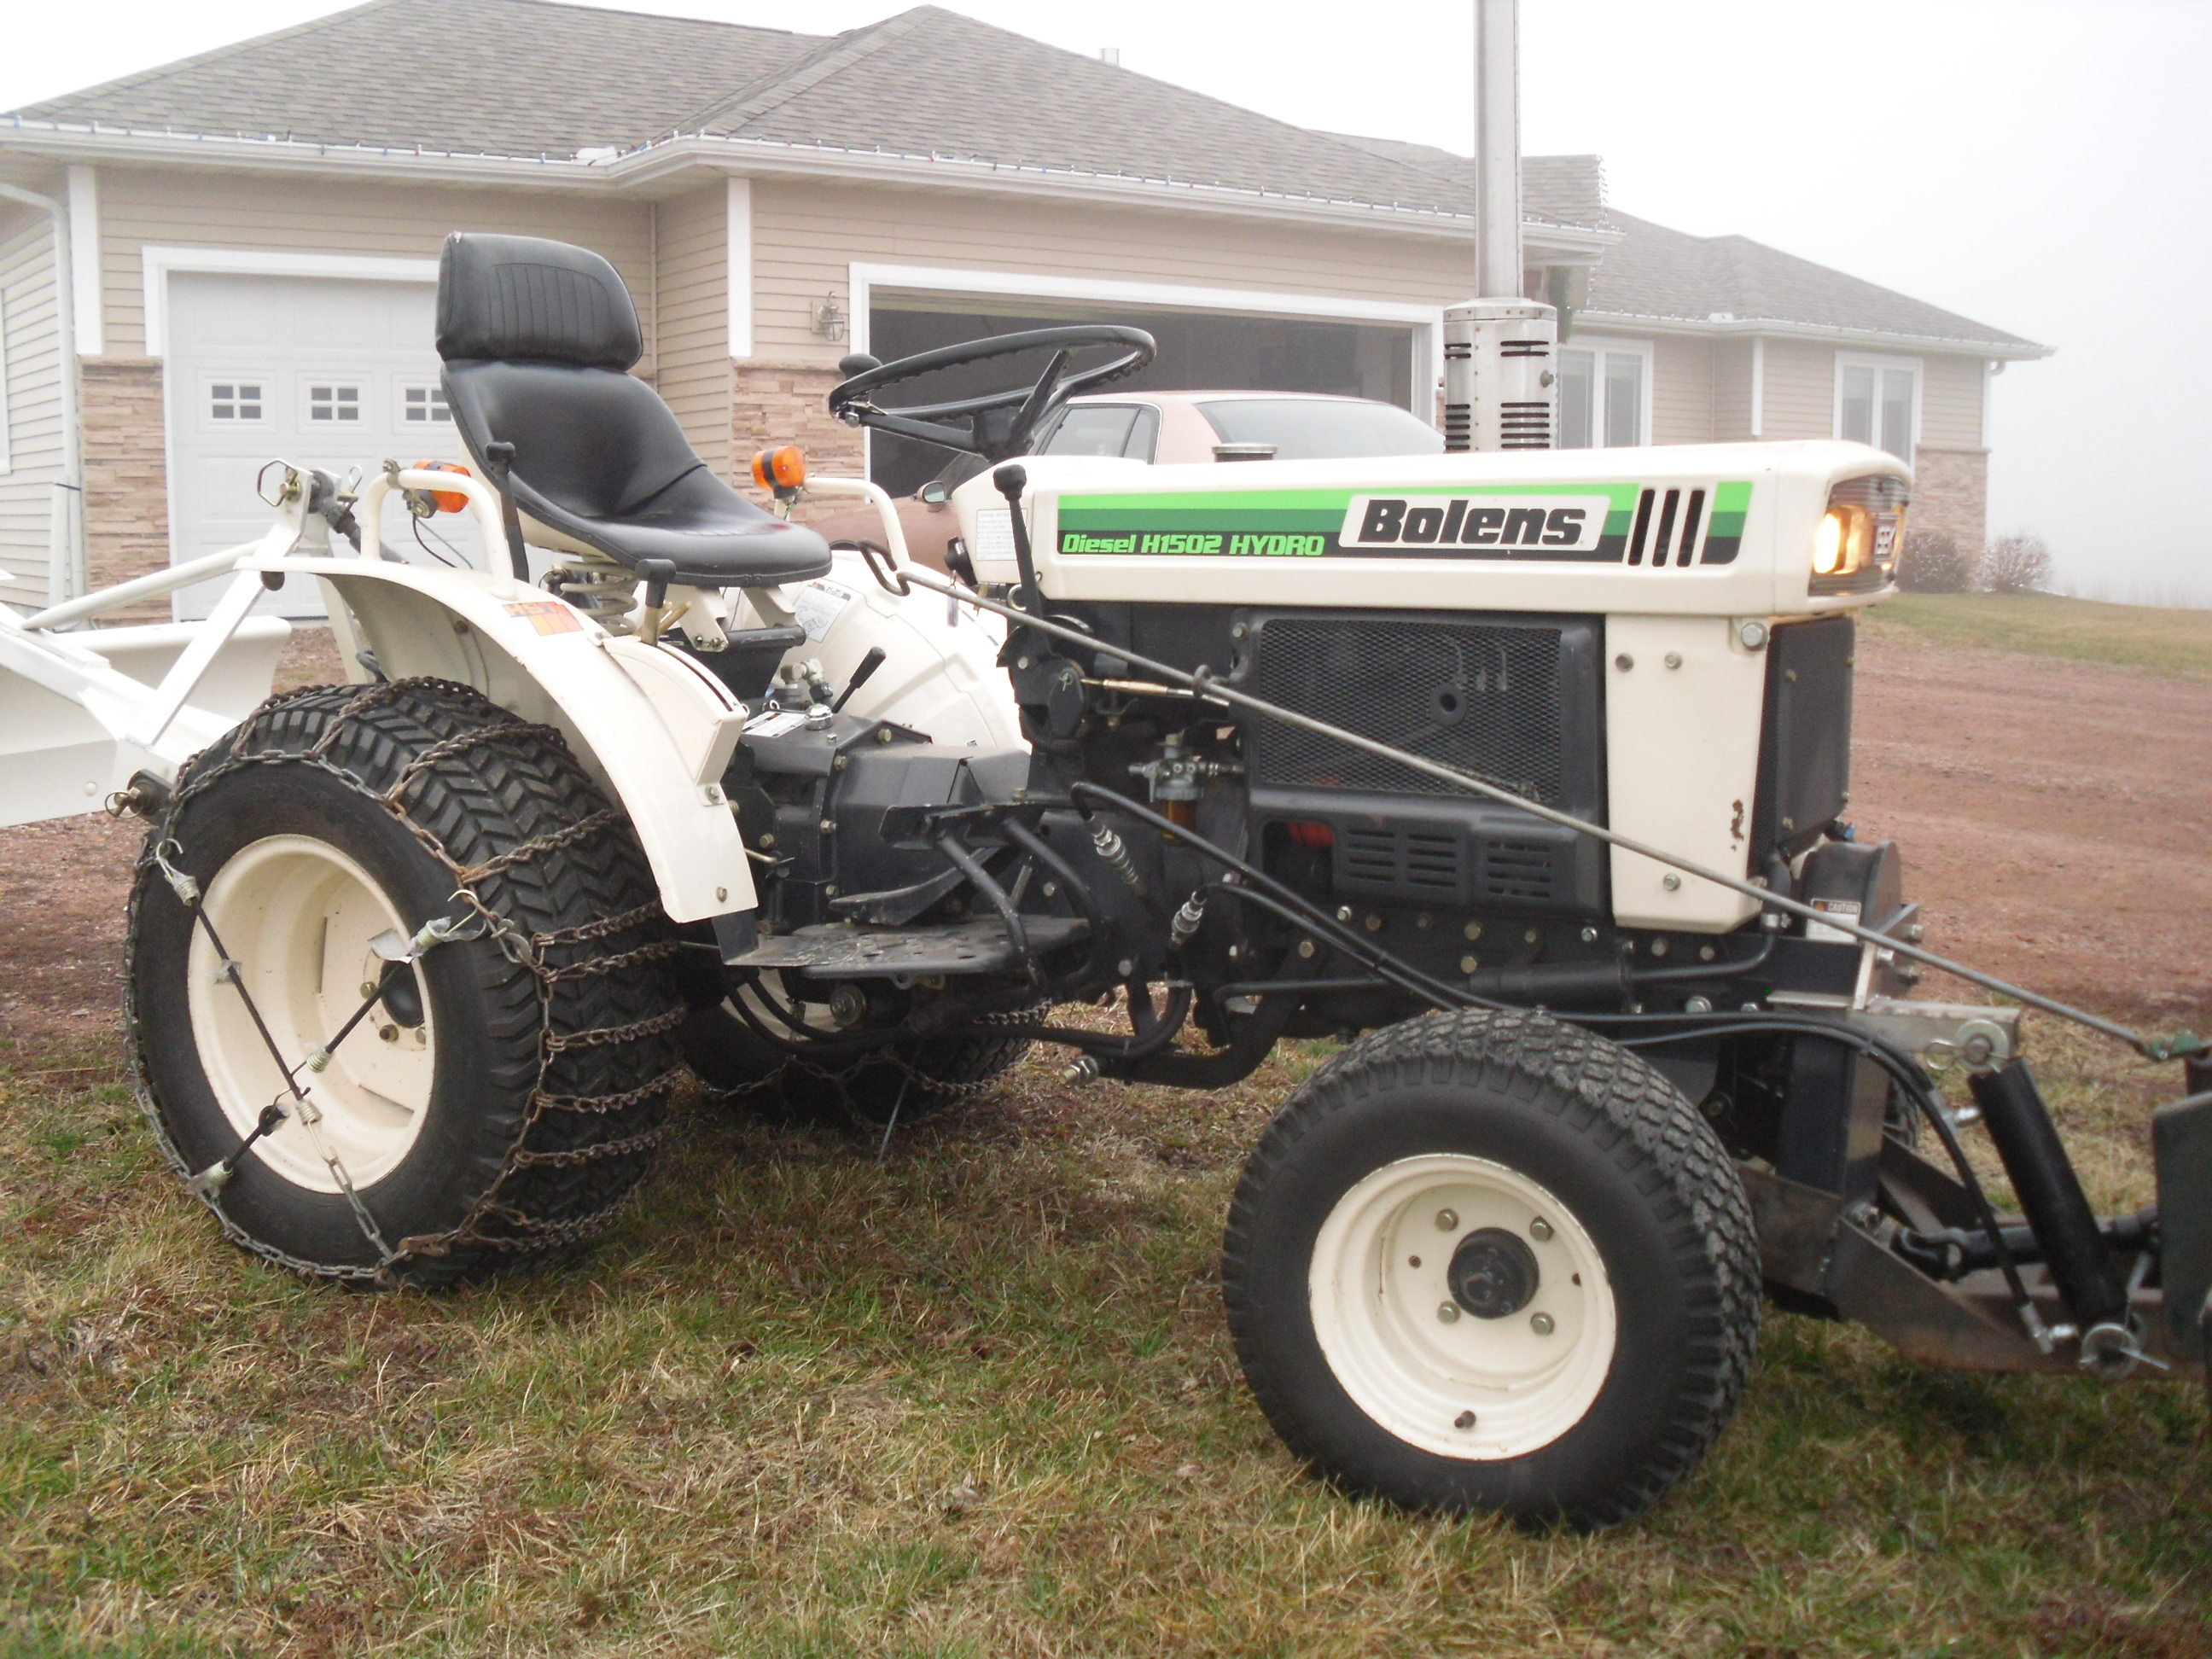 New to me H1502 with questions - MyTractorForum com - The